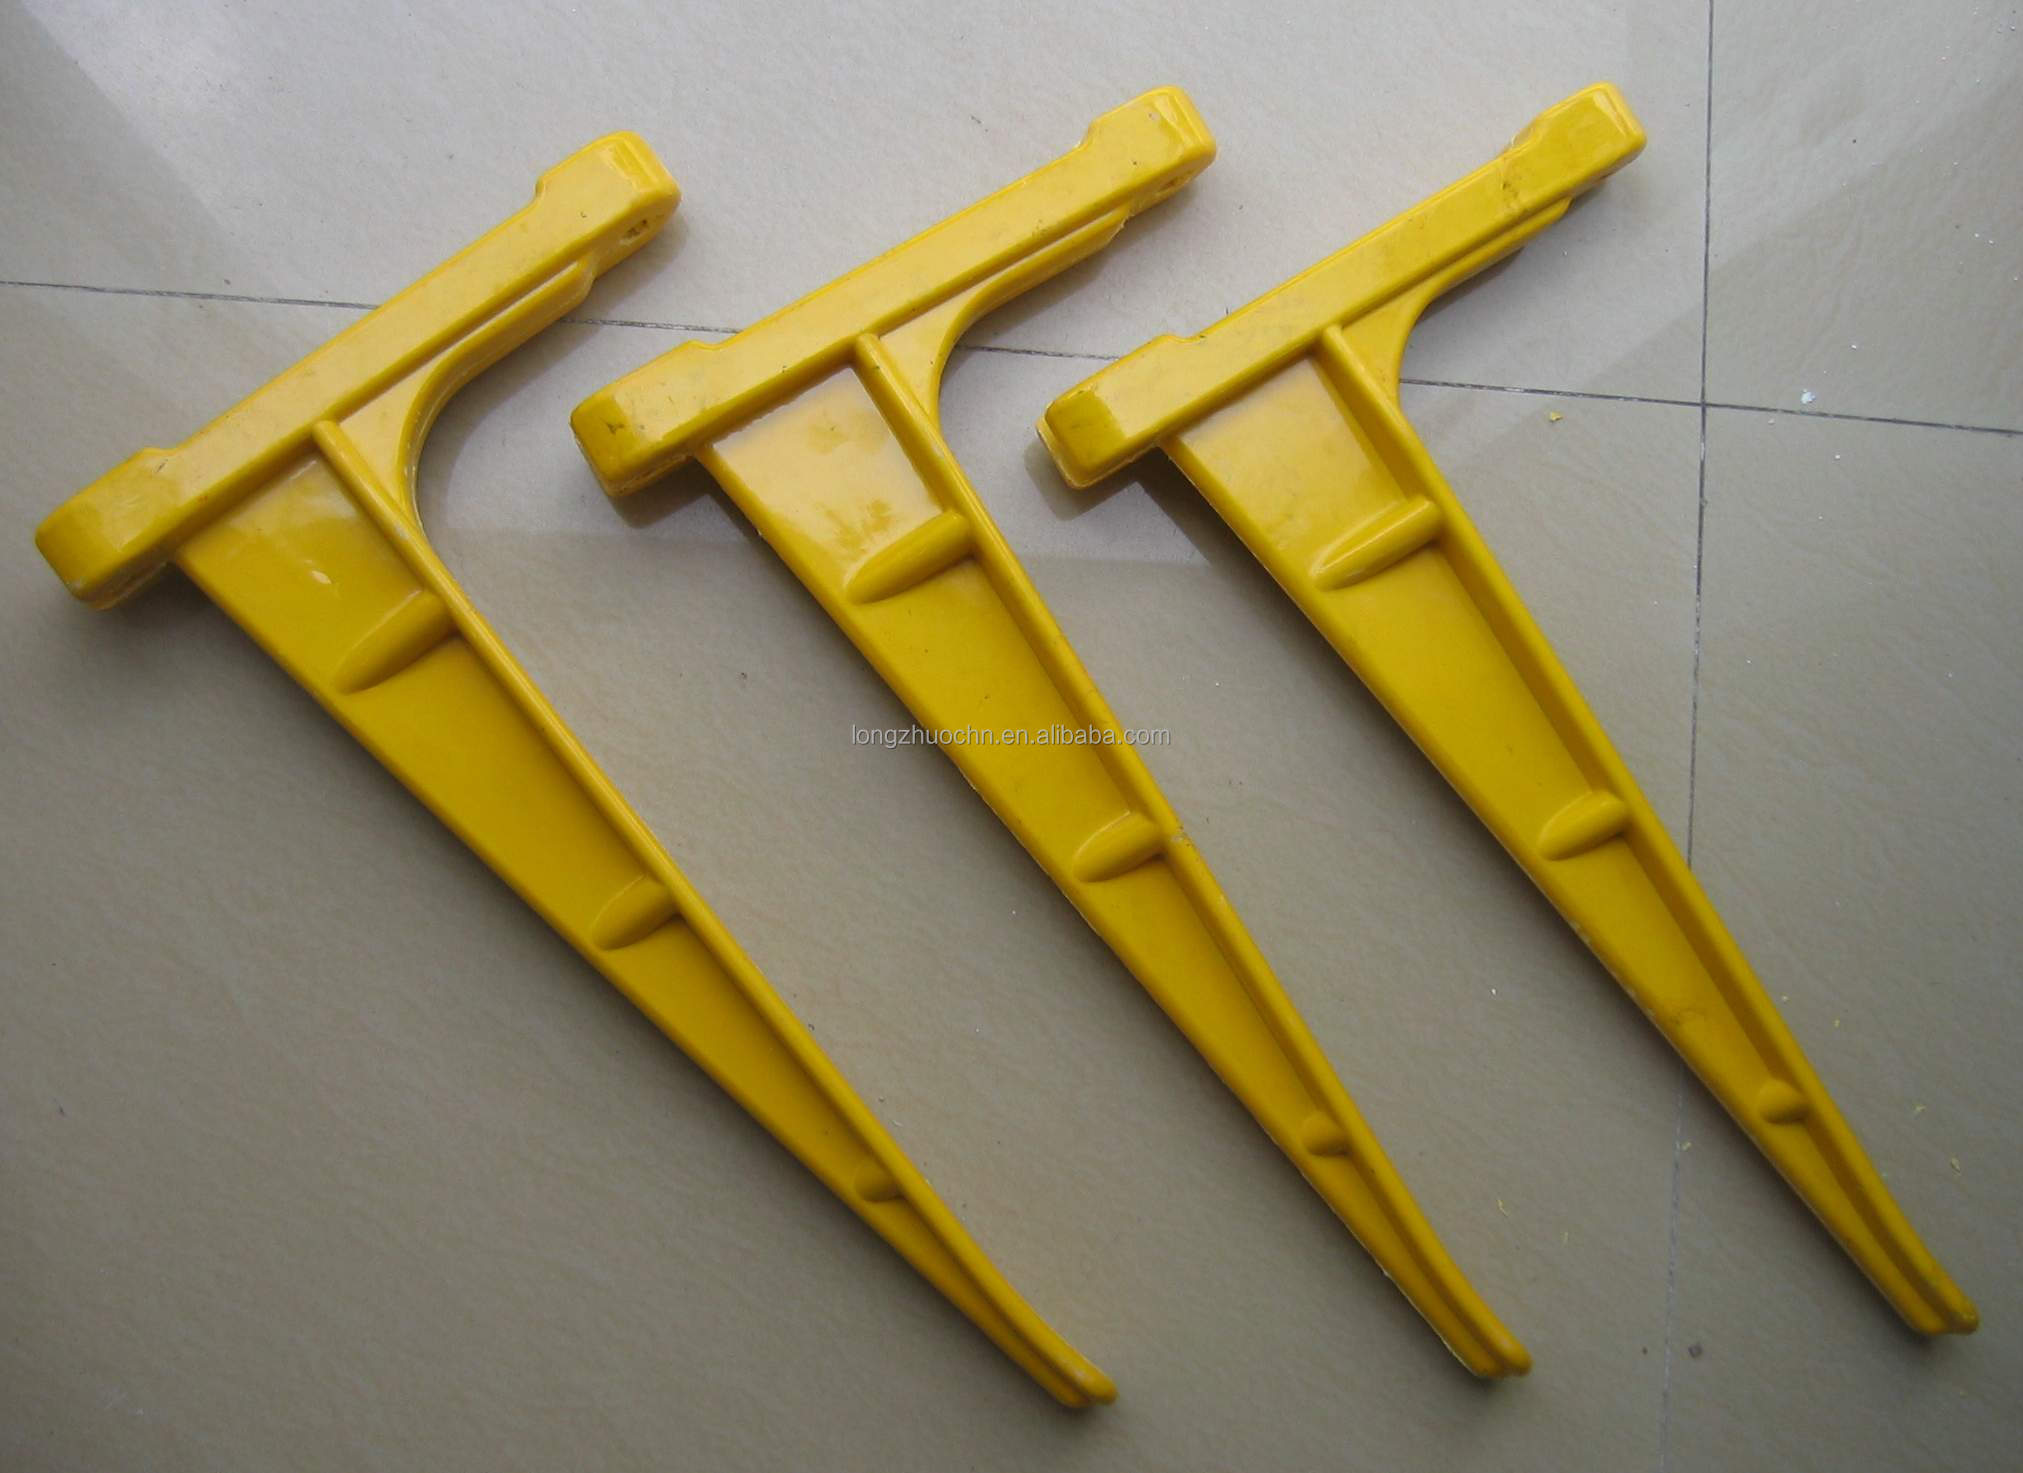 High Voltage Electrical Cable Hangers For Cable : Good price wall bracket for cable tray electric